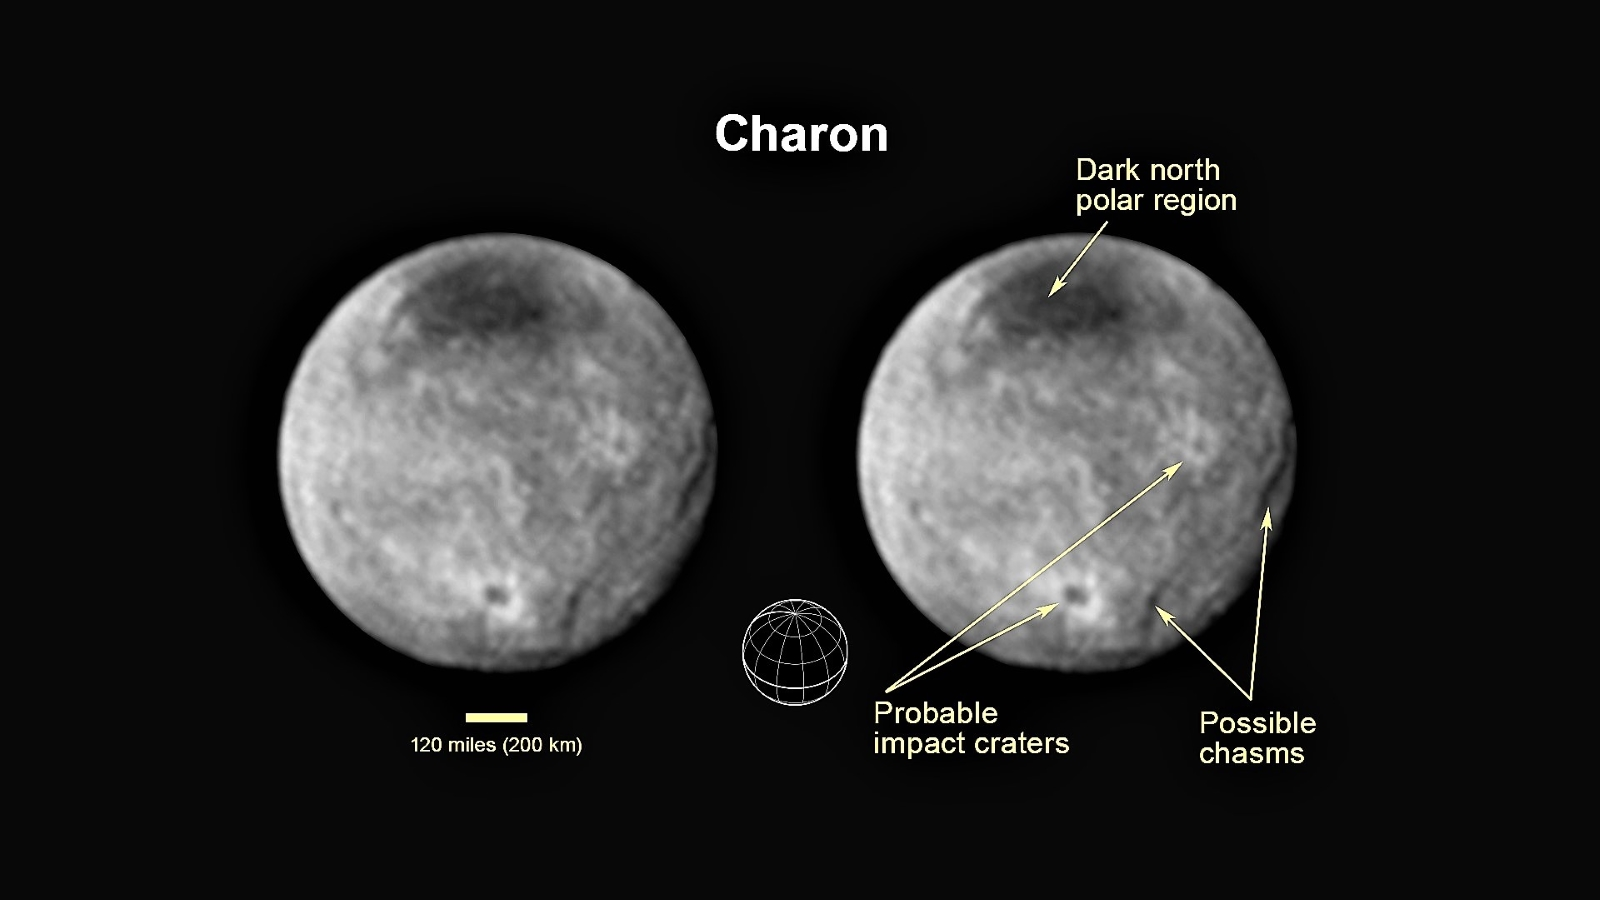 Annotated image with inset diagram showing Charon's north pole, equator, and central meridian, with the features highlighted.